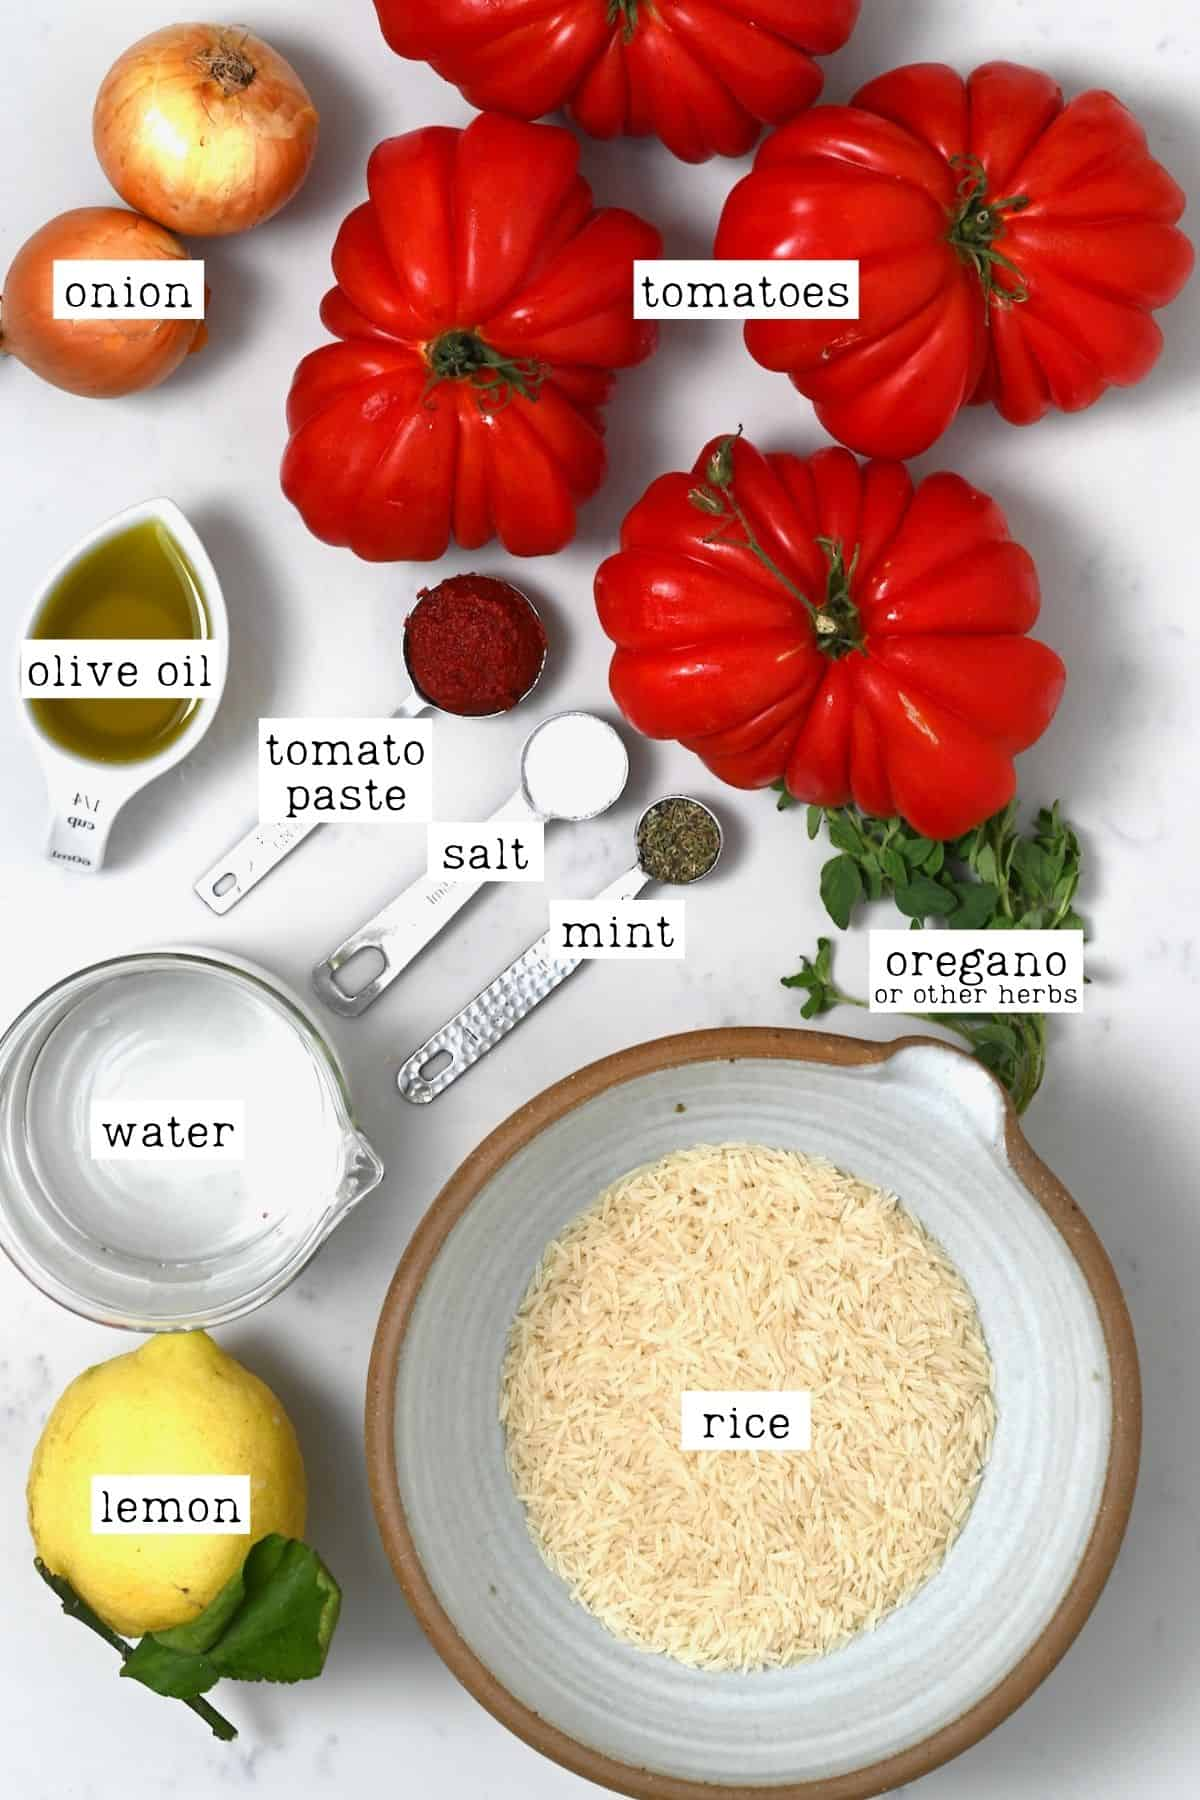 Ingredients for stuffed tomatoes